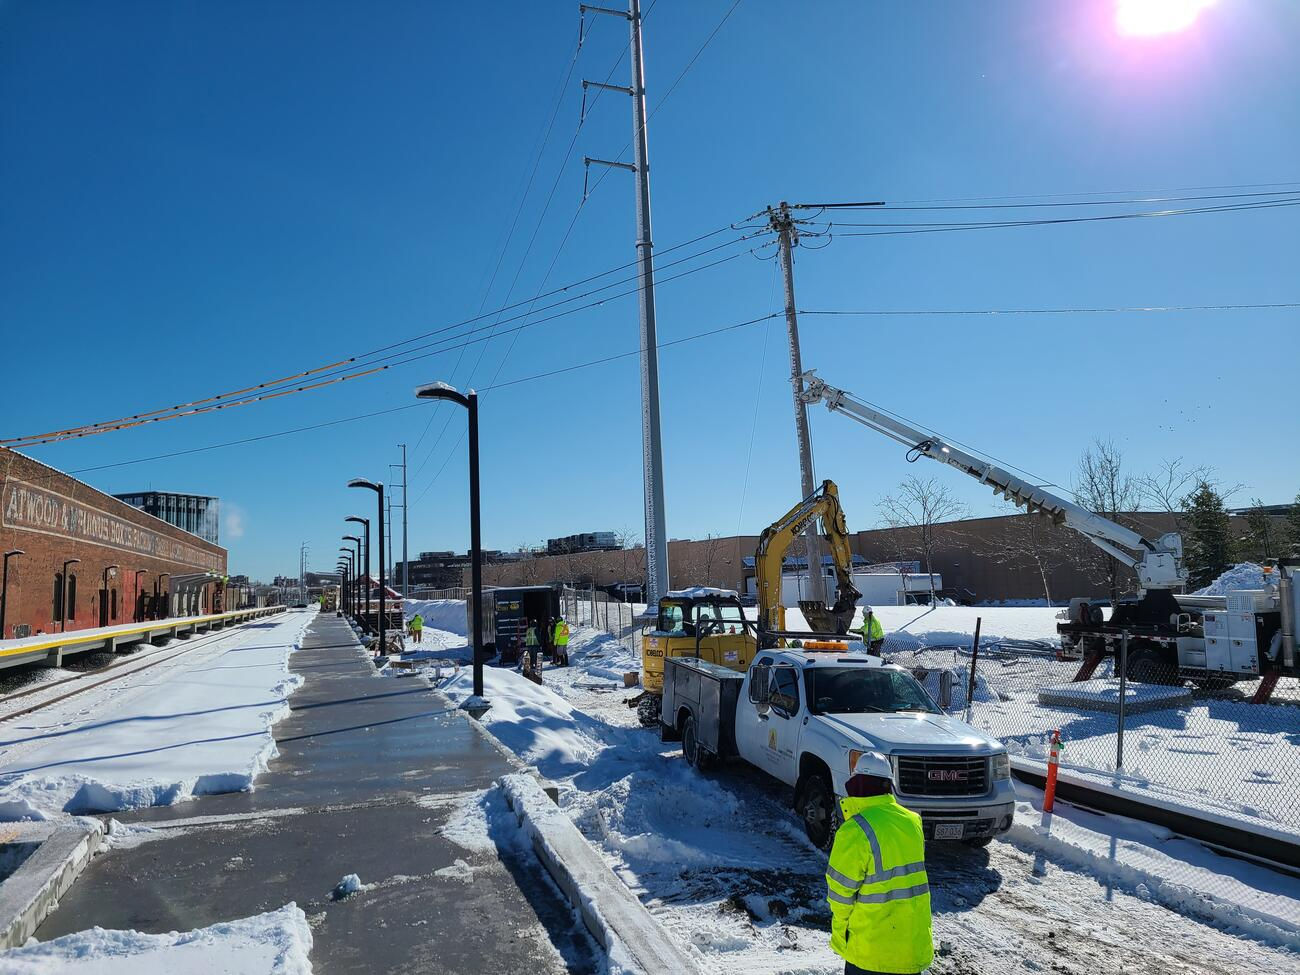 Crews installing part of new electrical service in the area of the outbound platform for the new Chelsea Commuter Rail Station